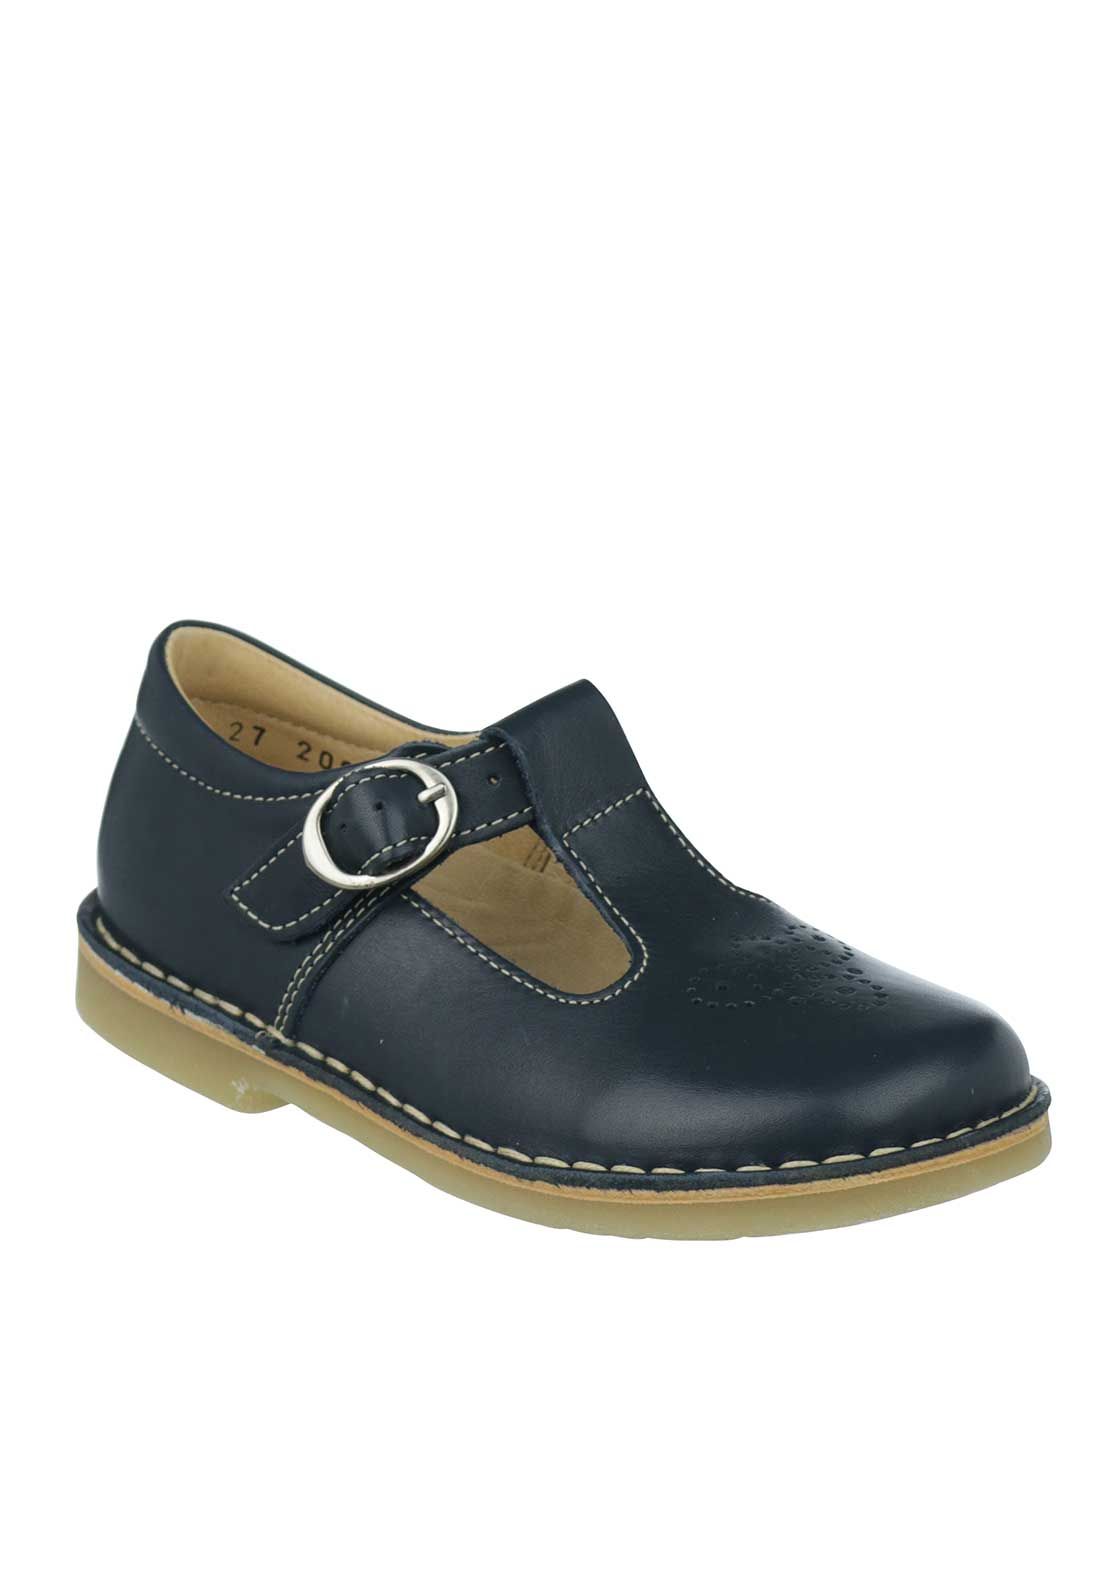 Petasil Cristina Leather Perforated Buckled Strap Shoes, Navy